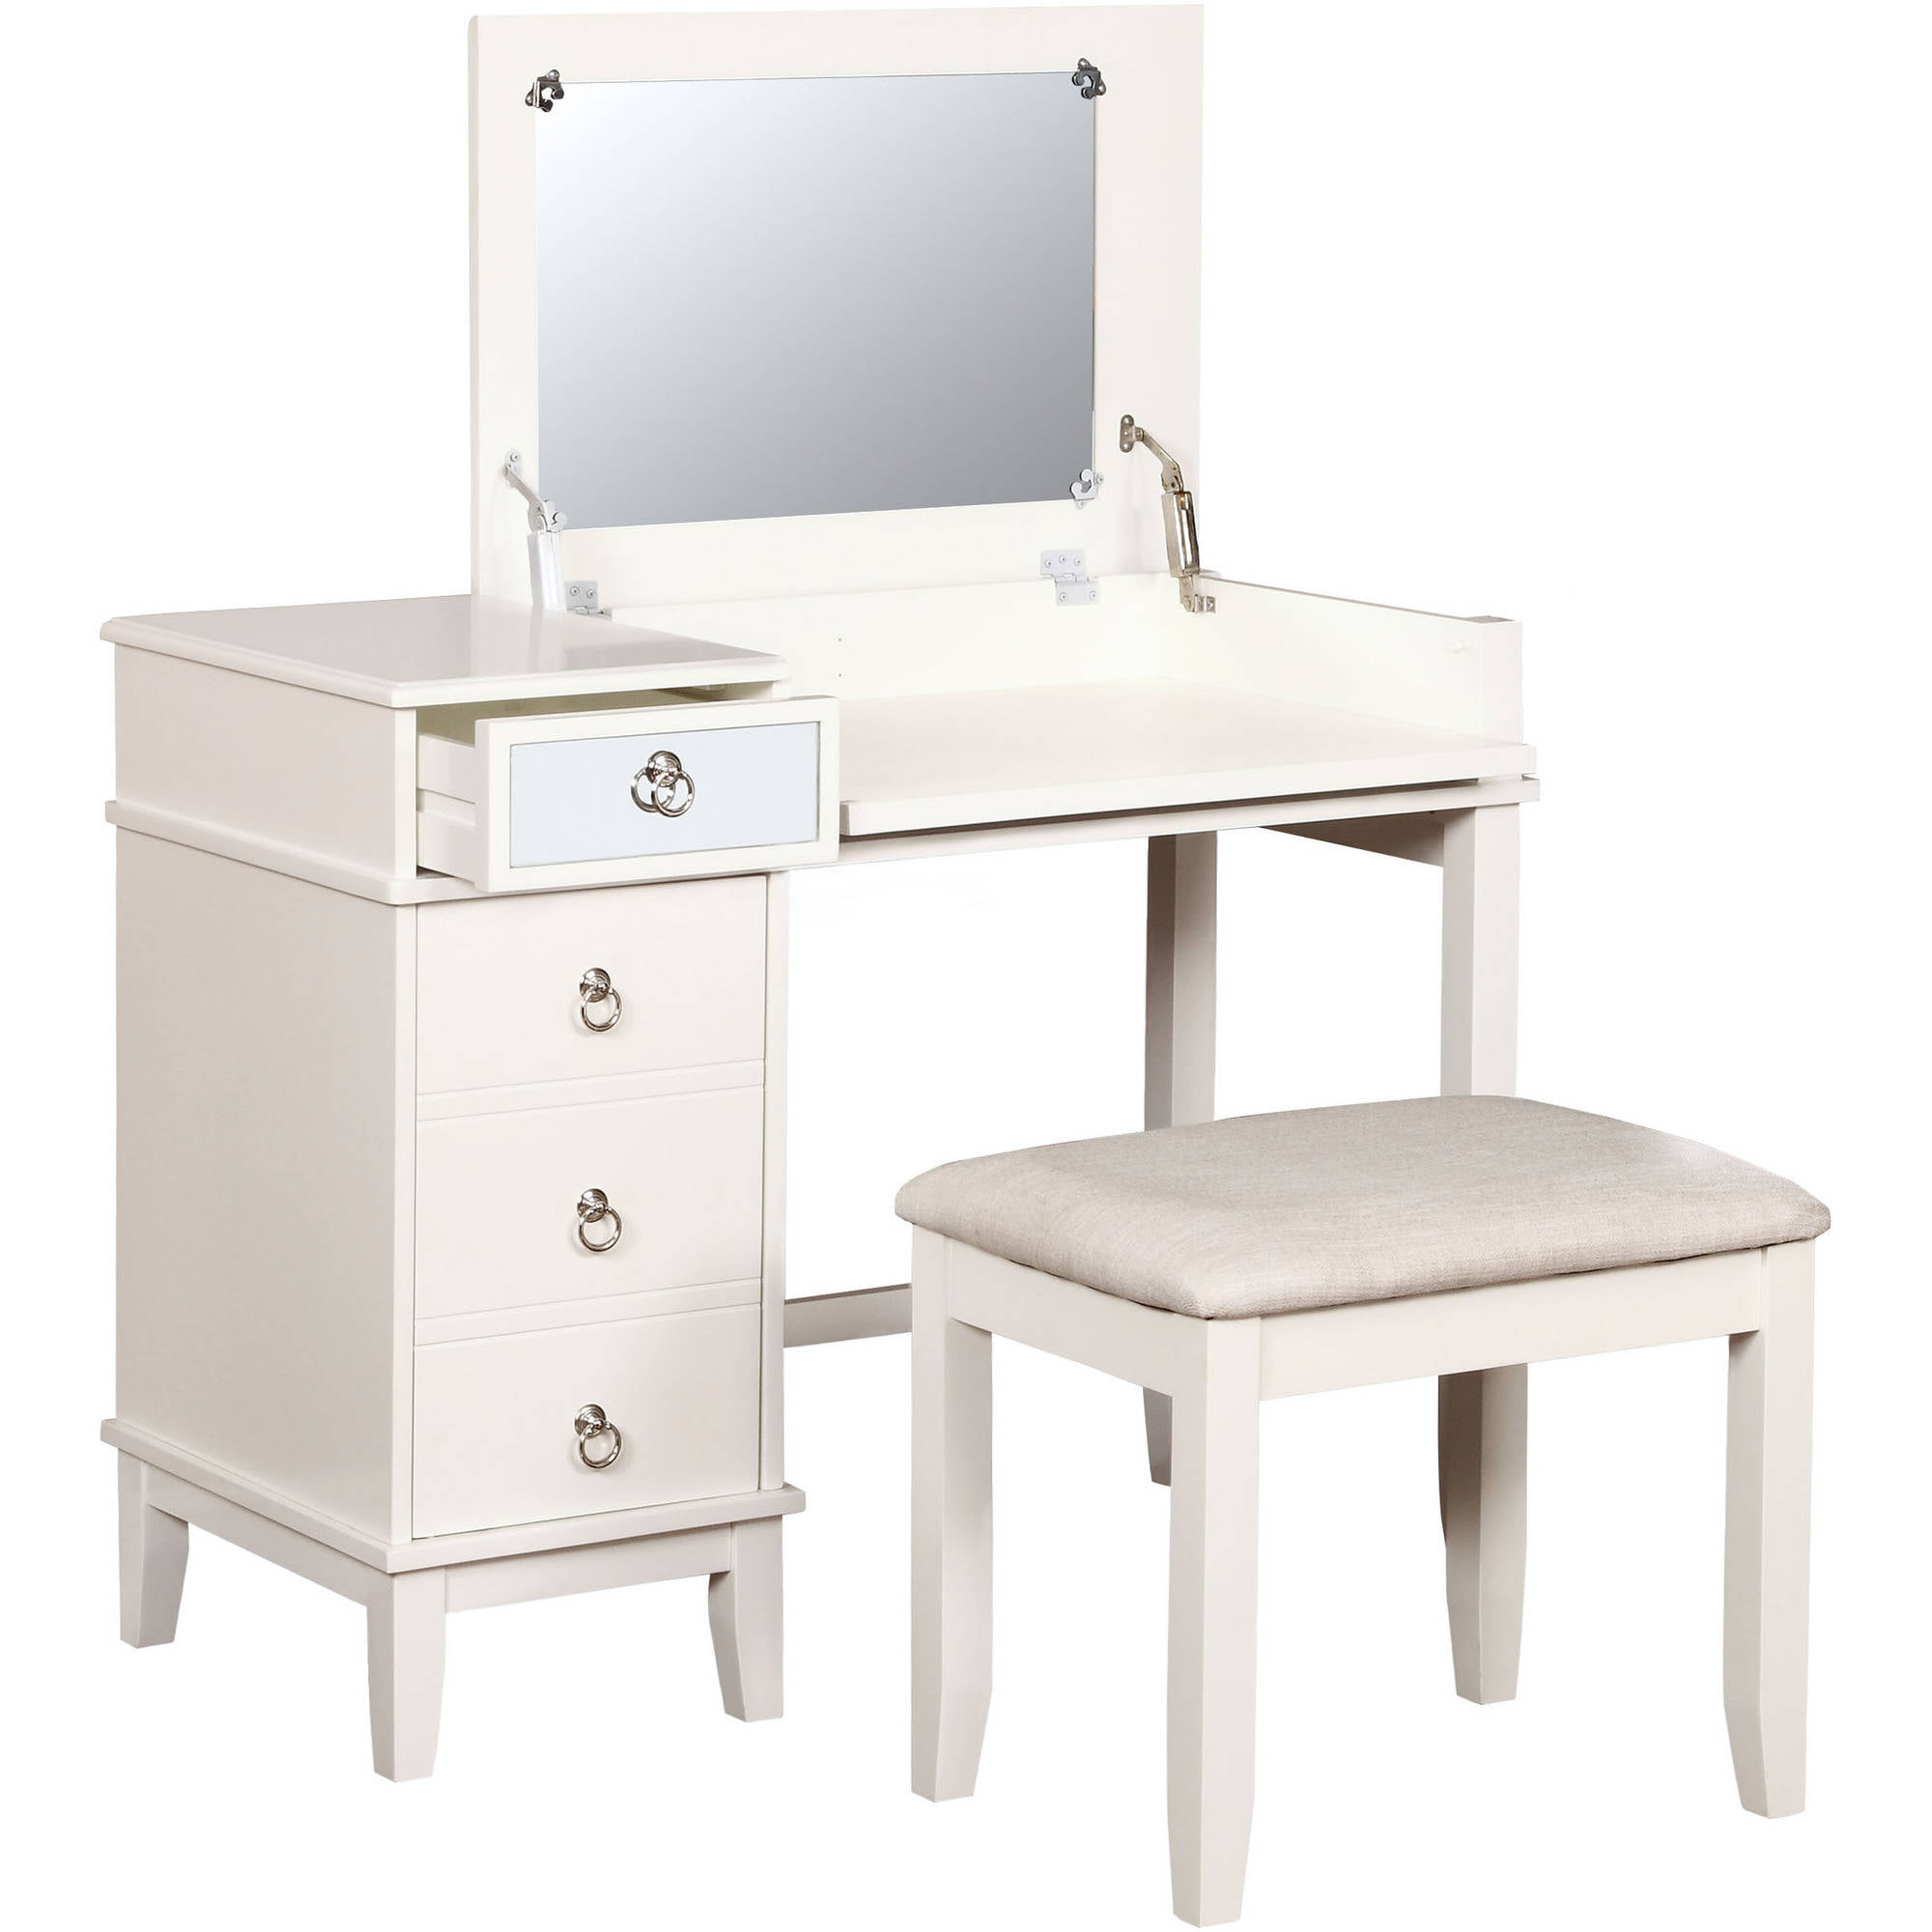 Attirant Bedroom Vanities   Walmart.com